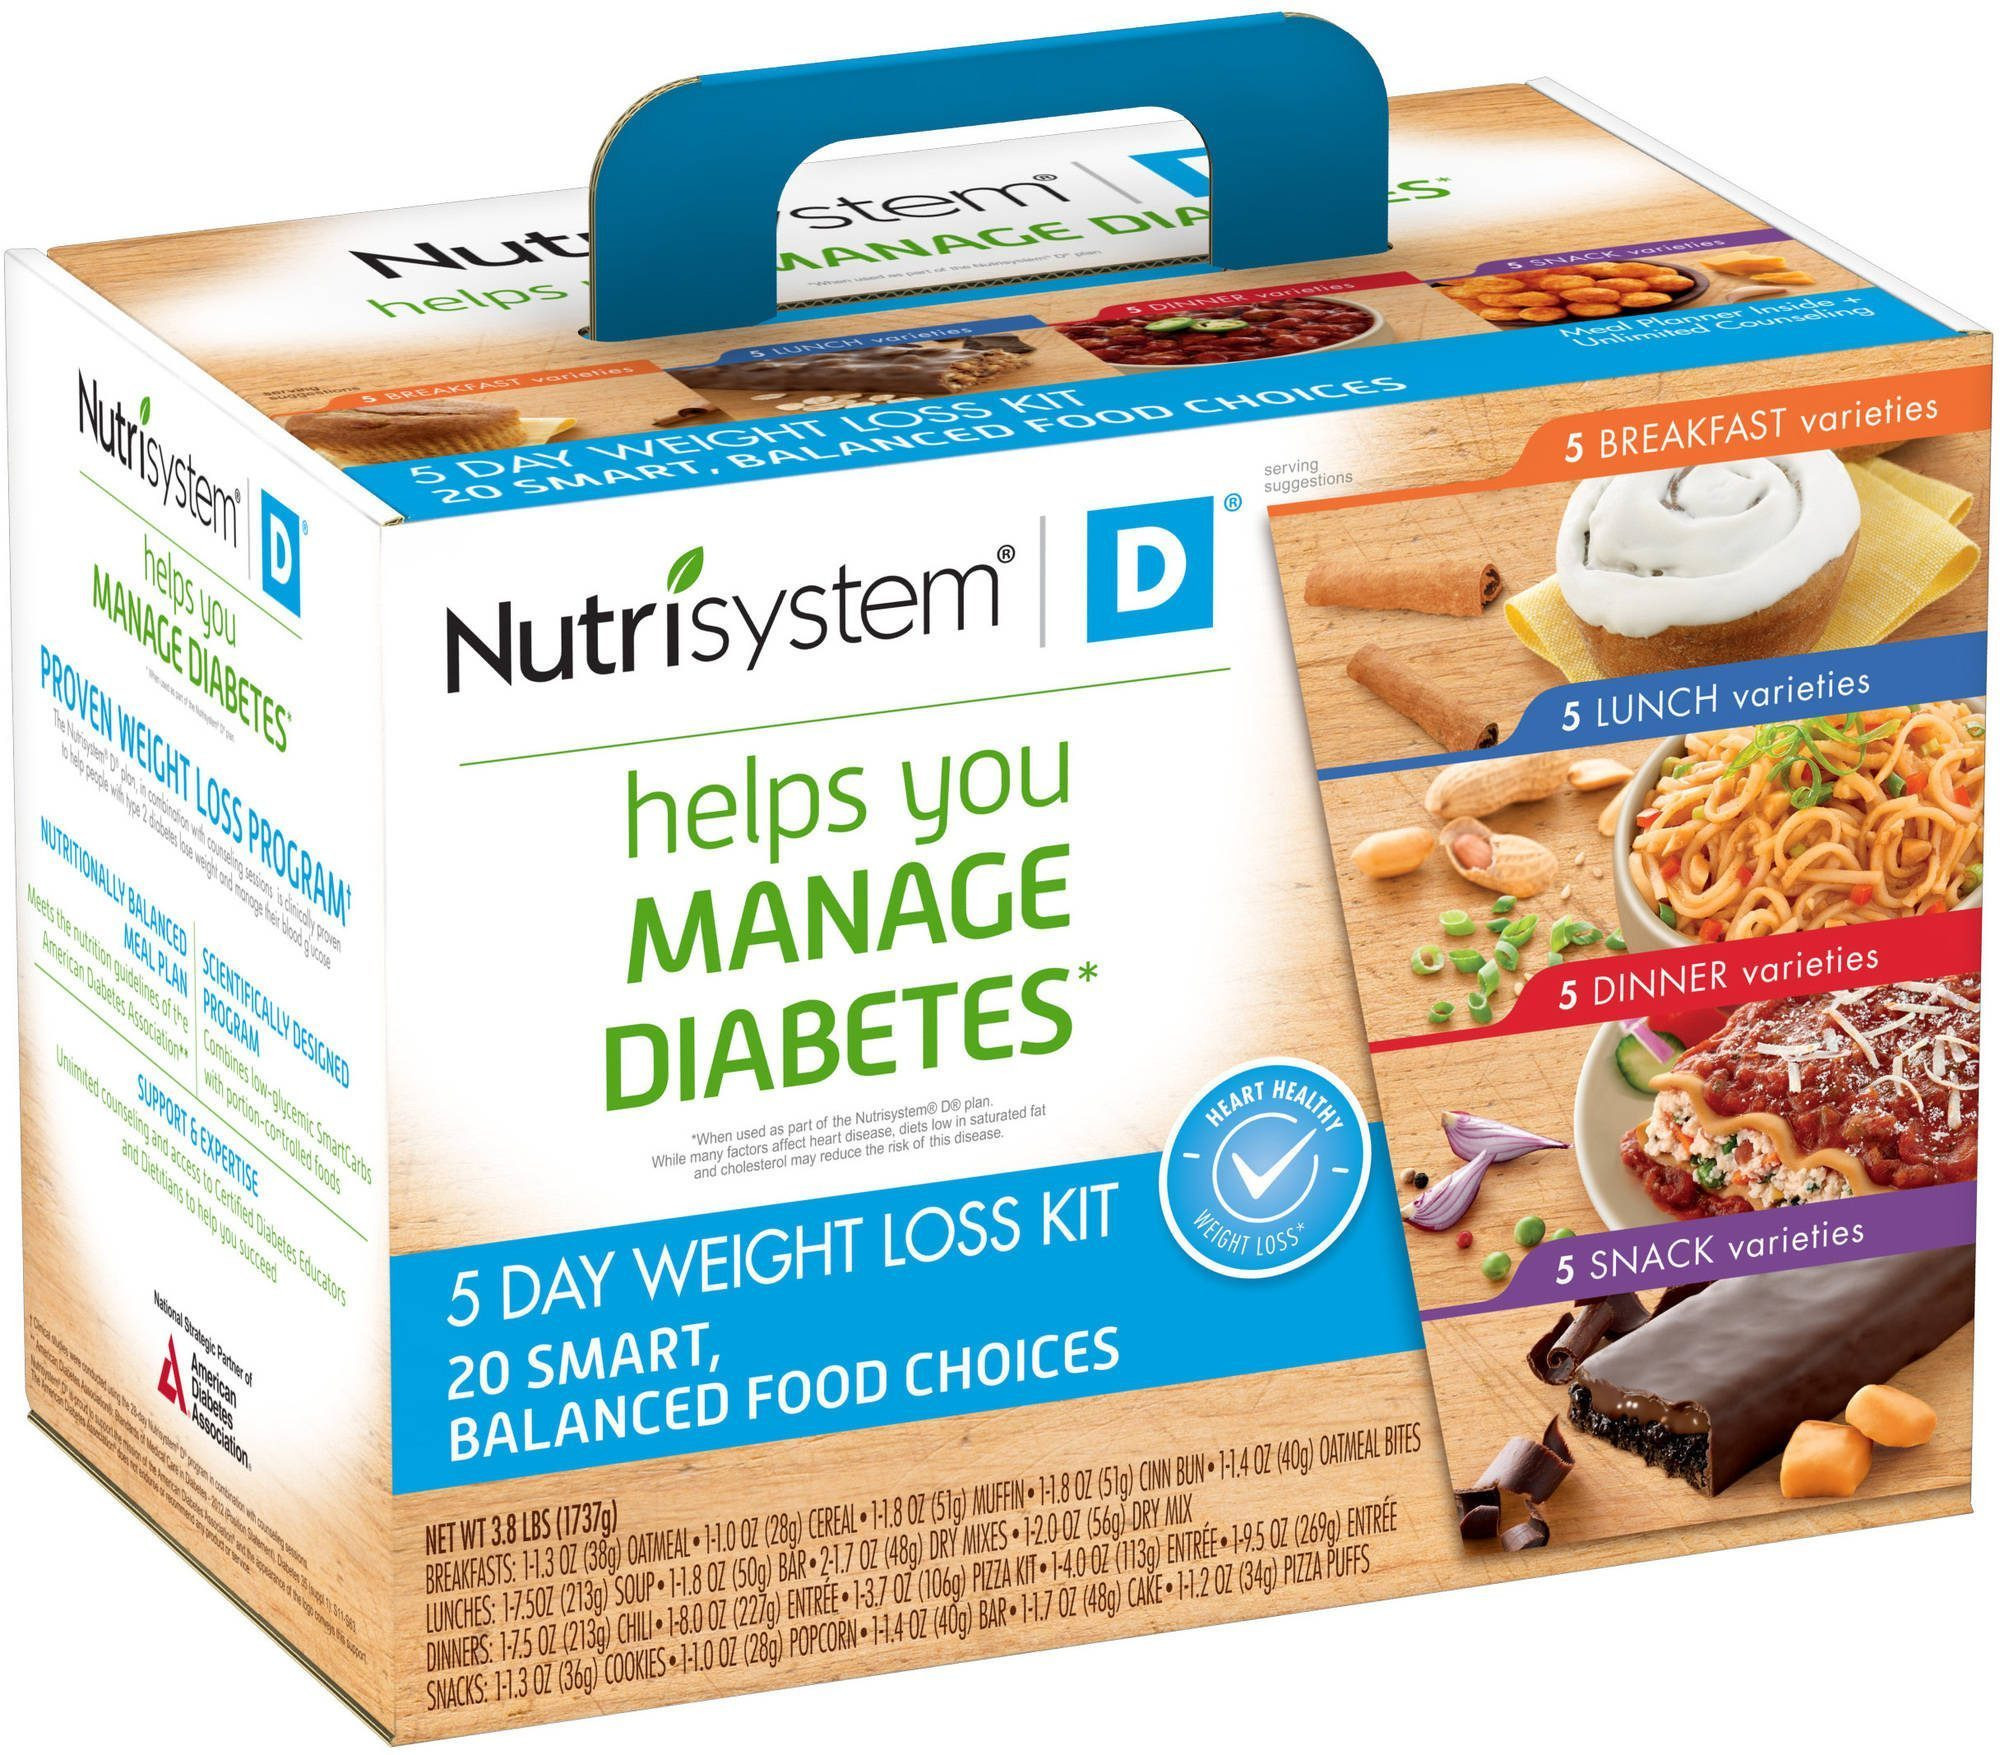 Diabetic Recipes For Weight Loss  Nutrisystem D for Diabetics Reviews & Cost [2018] Does it